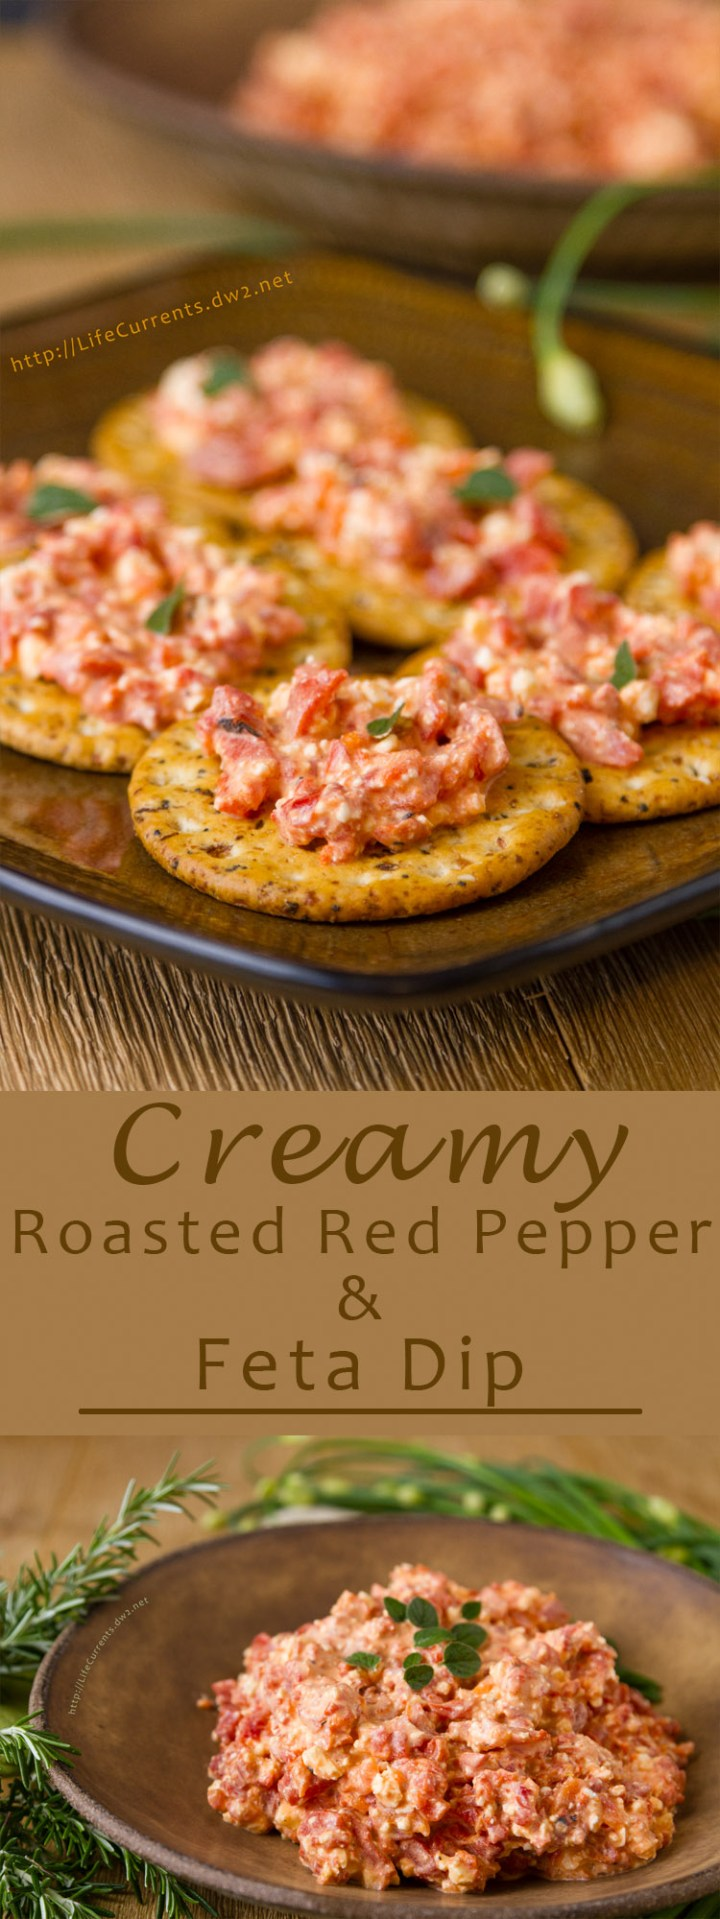 Creamy Roasted Red Pepper and Feta Dip – full of flavor & really impressive, but super easy to make. All they'll know is how delicious it is!